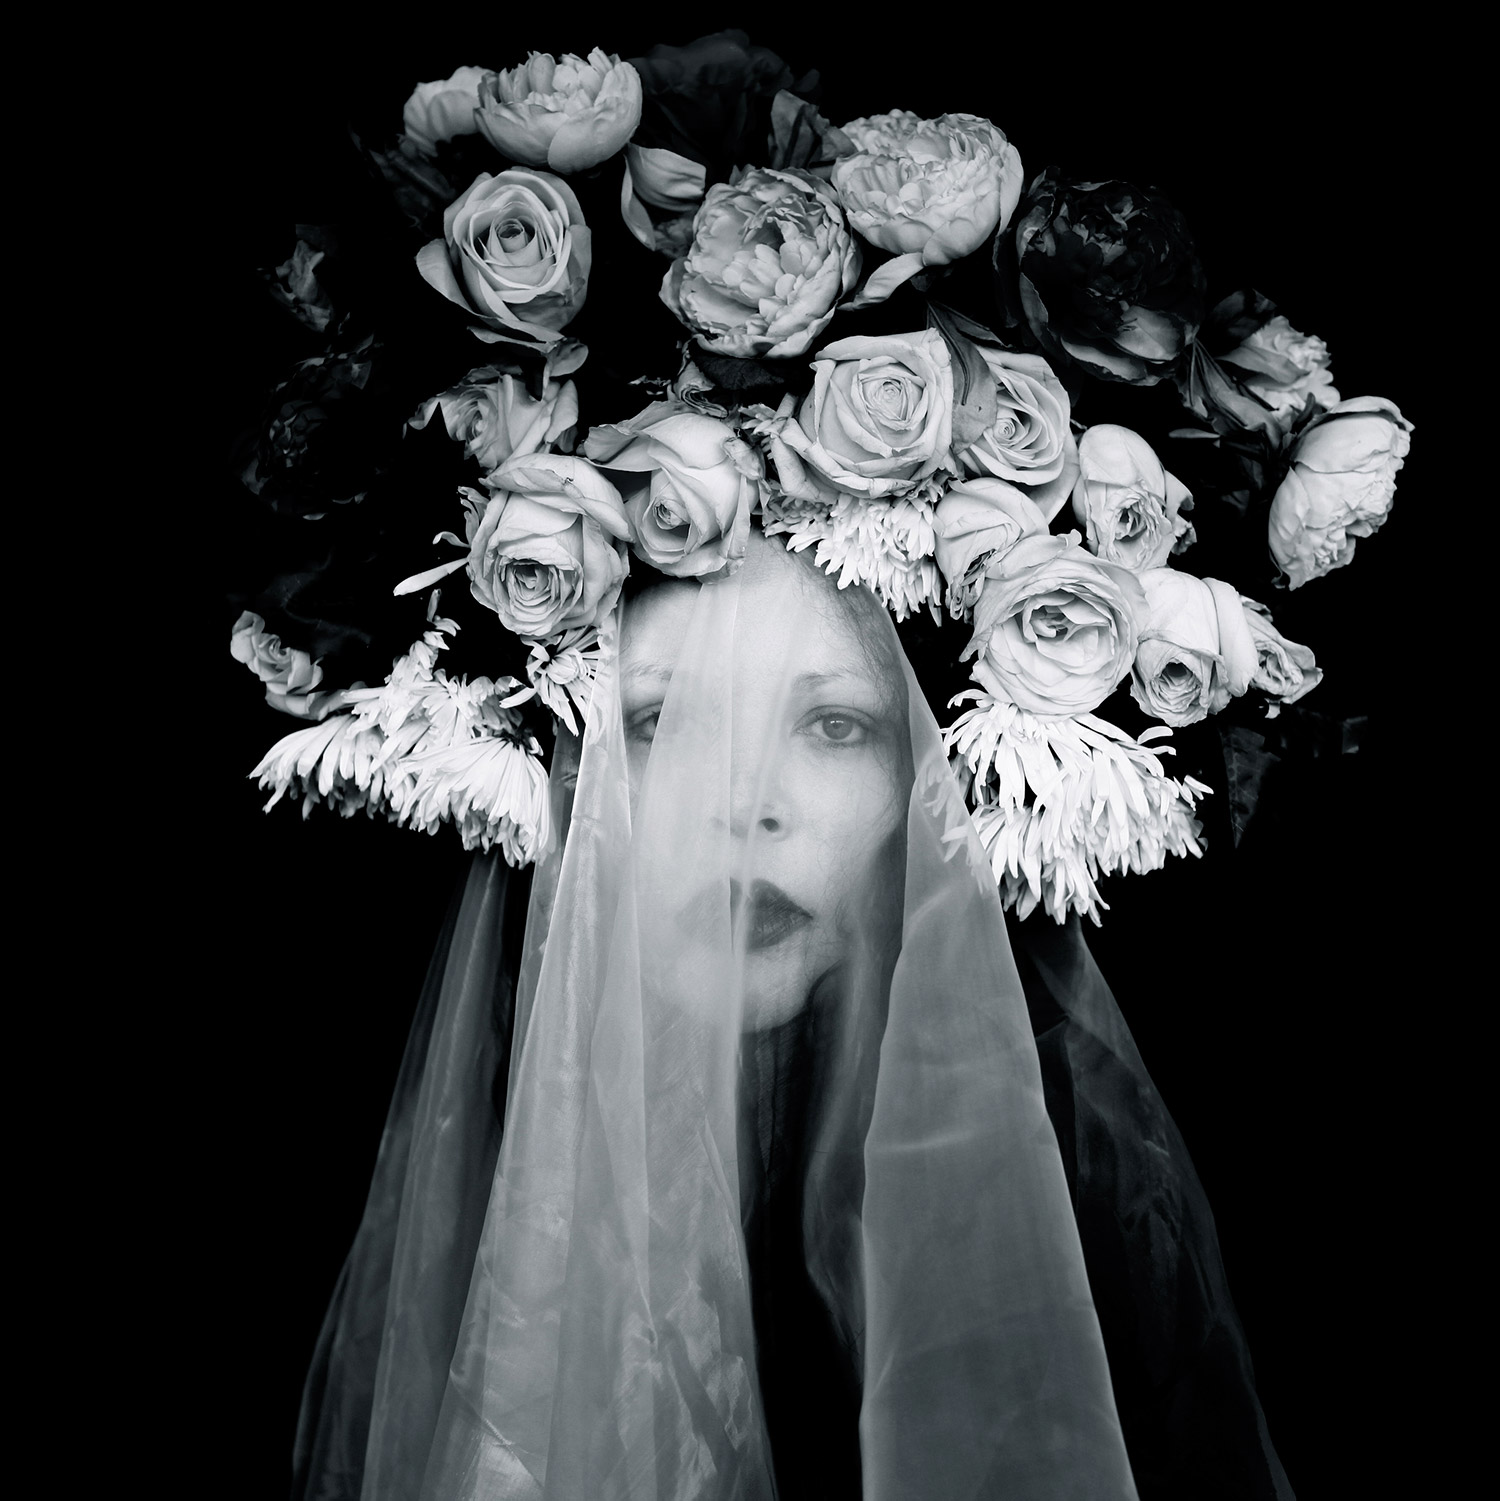 Helen Warner, Self Portrait - woman wearing roses with shroud